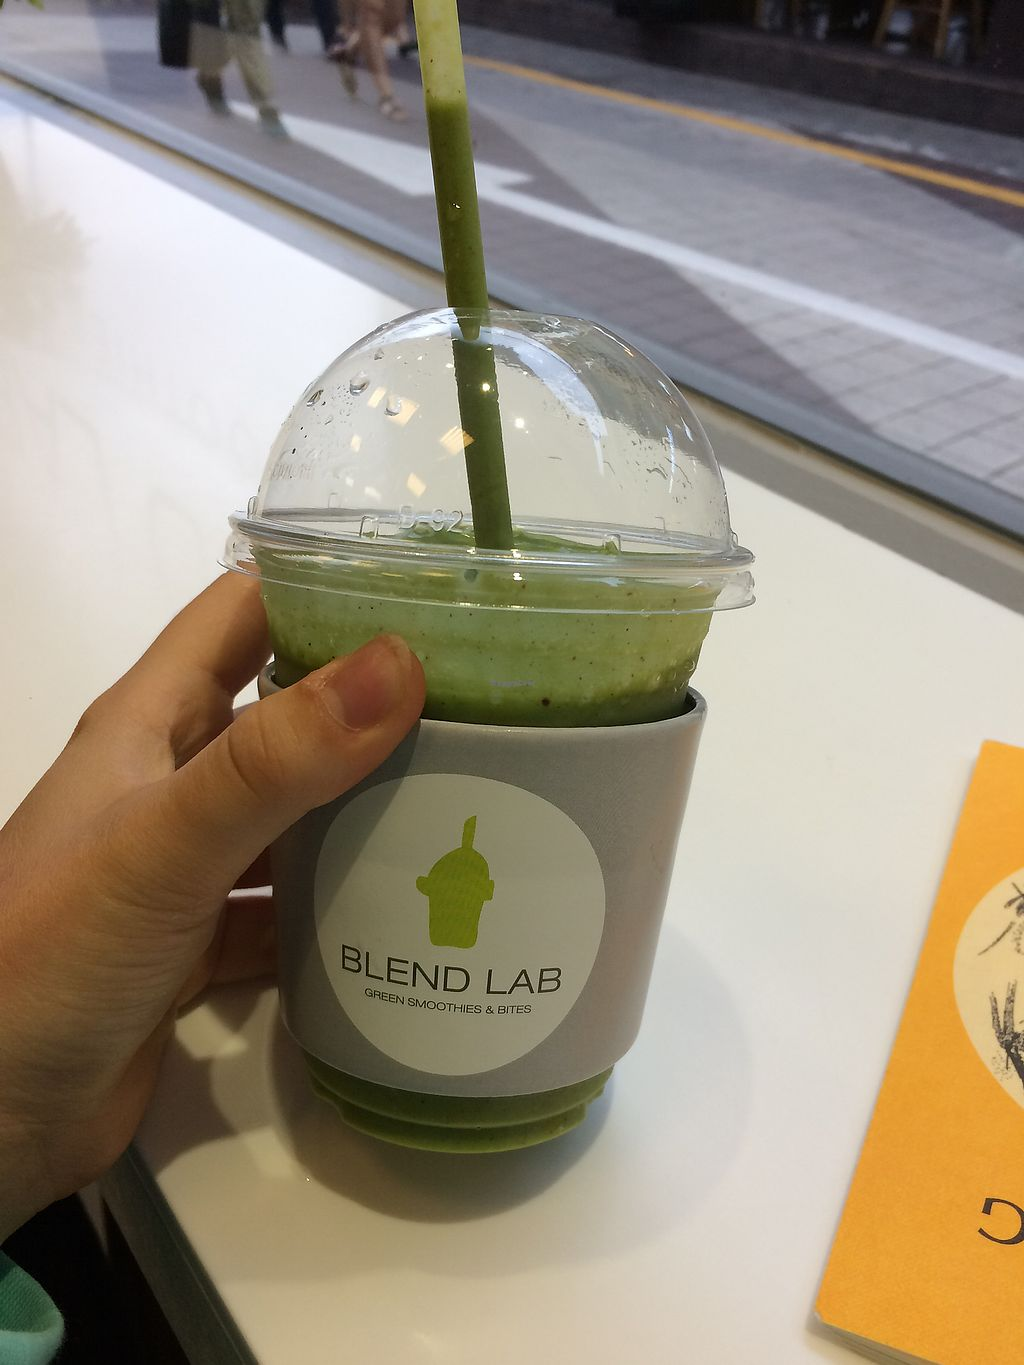 """Photo of Blend Lab - 블렌드랩  by <a href=""""/members/profile/ellieallan"""">ellieallan</a> <br/>""""Basil smoothie"""" <br/> July 15, 2017  - <a href='/contact/abuse/image/89559/280570'>Report</a>"""